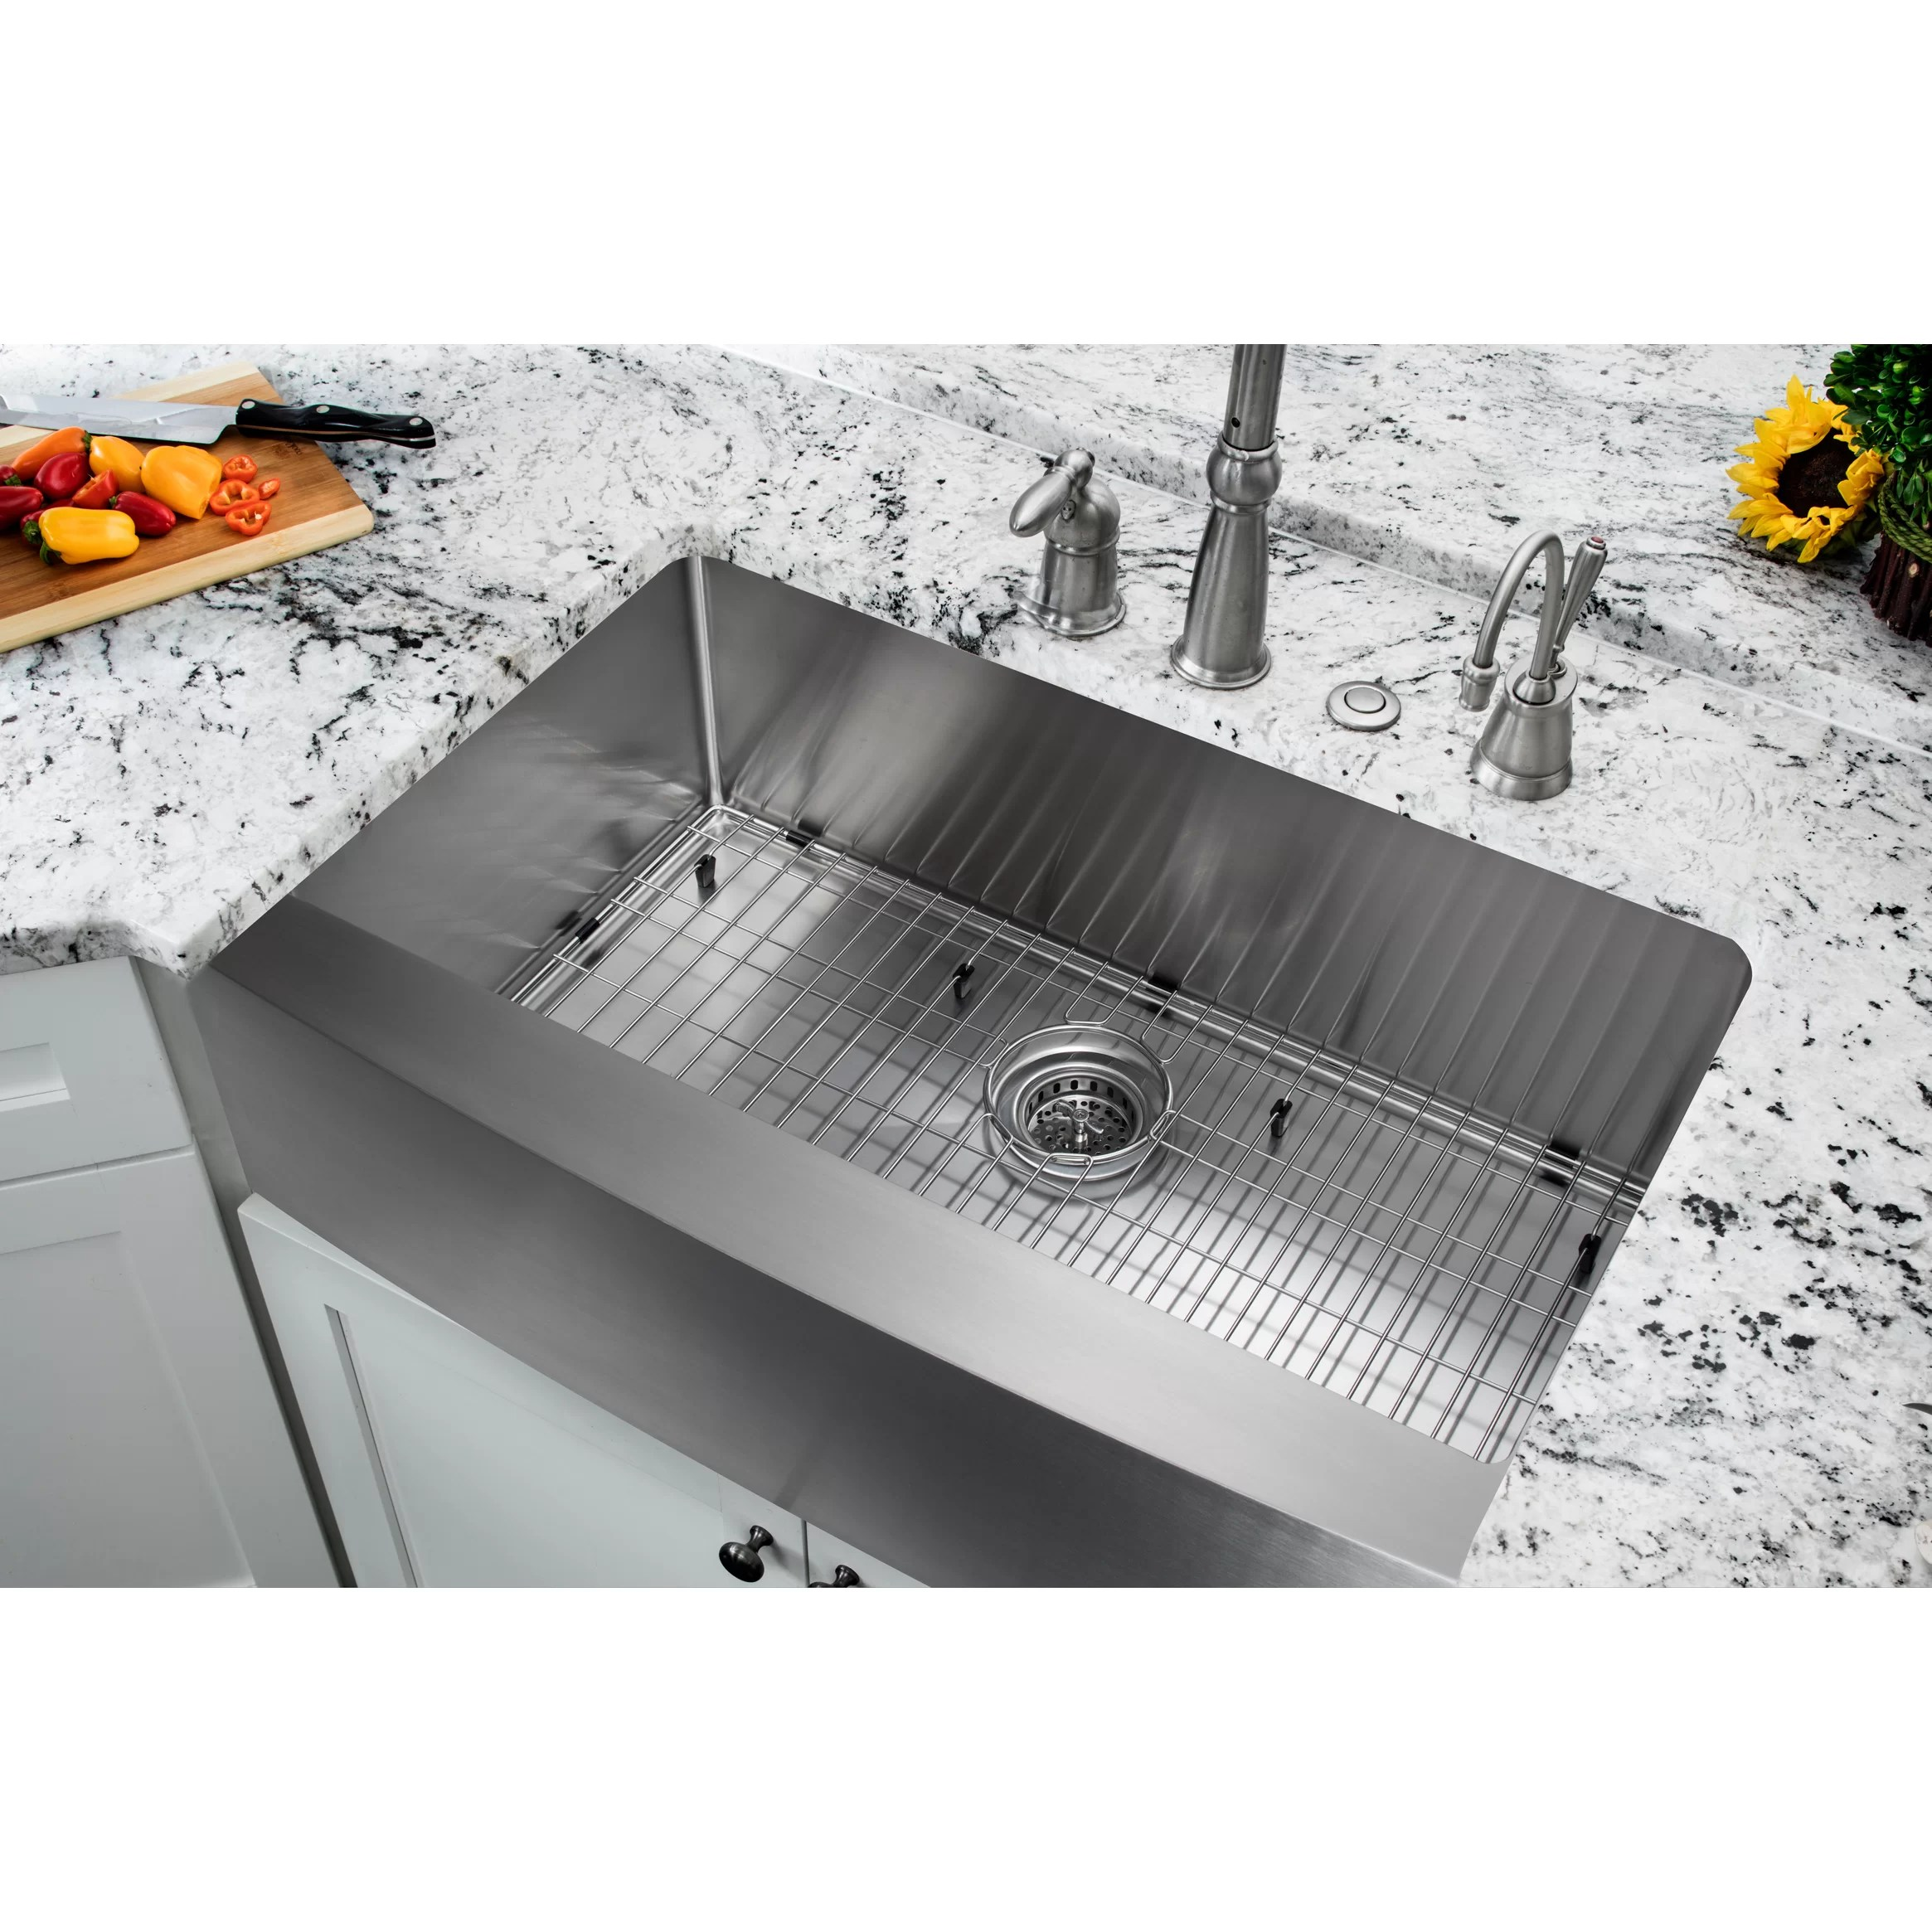 All Kitchen Sinks l c O~Farmhouse+ 5BS 5D+Apron kitchen sink 35 20 75 Single Bowl Farmhouse Apron Kitchen Sink